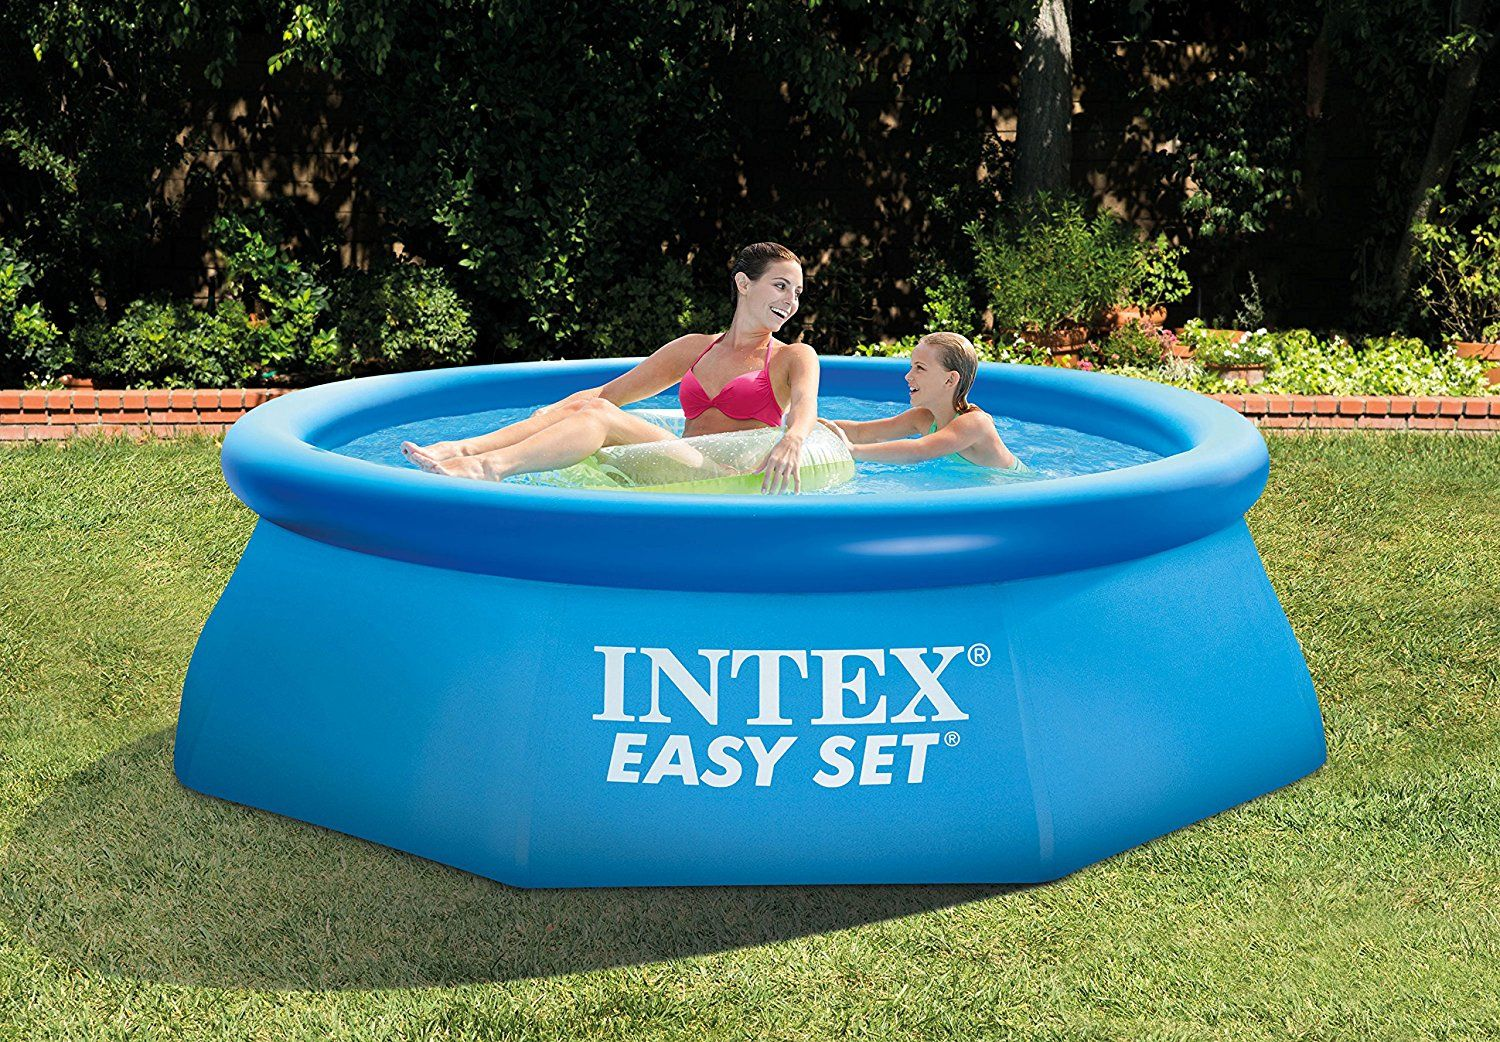 Intex Easy Set Pool without Filter - Blue, 8\' x 30\